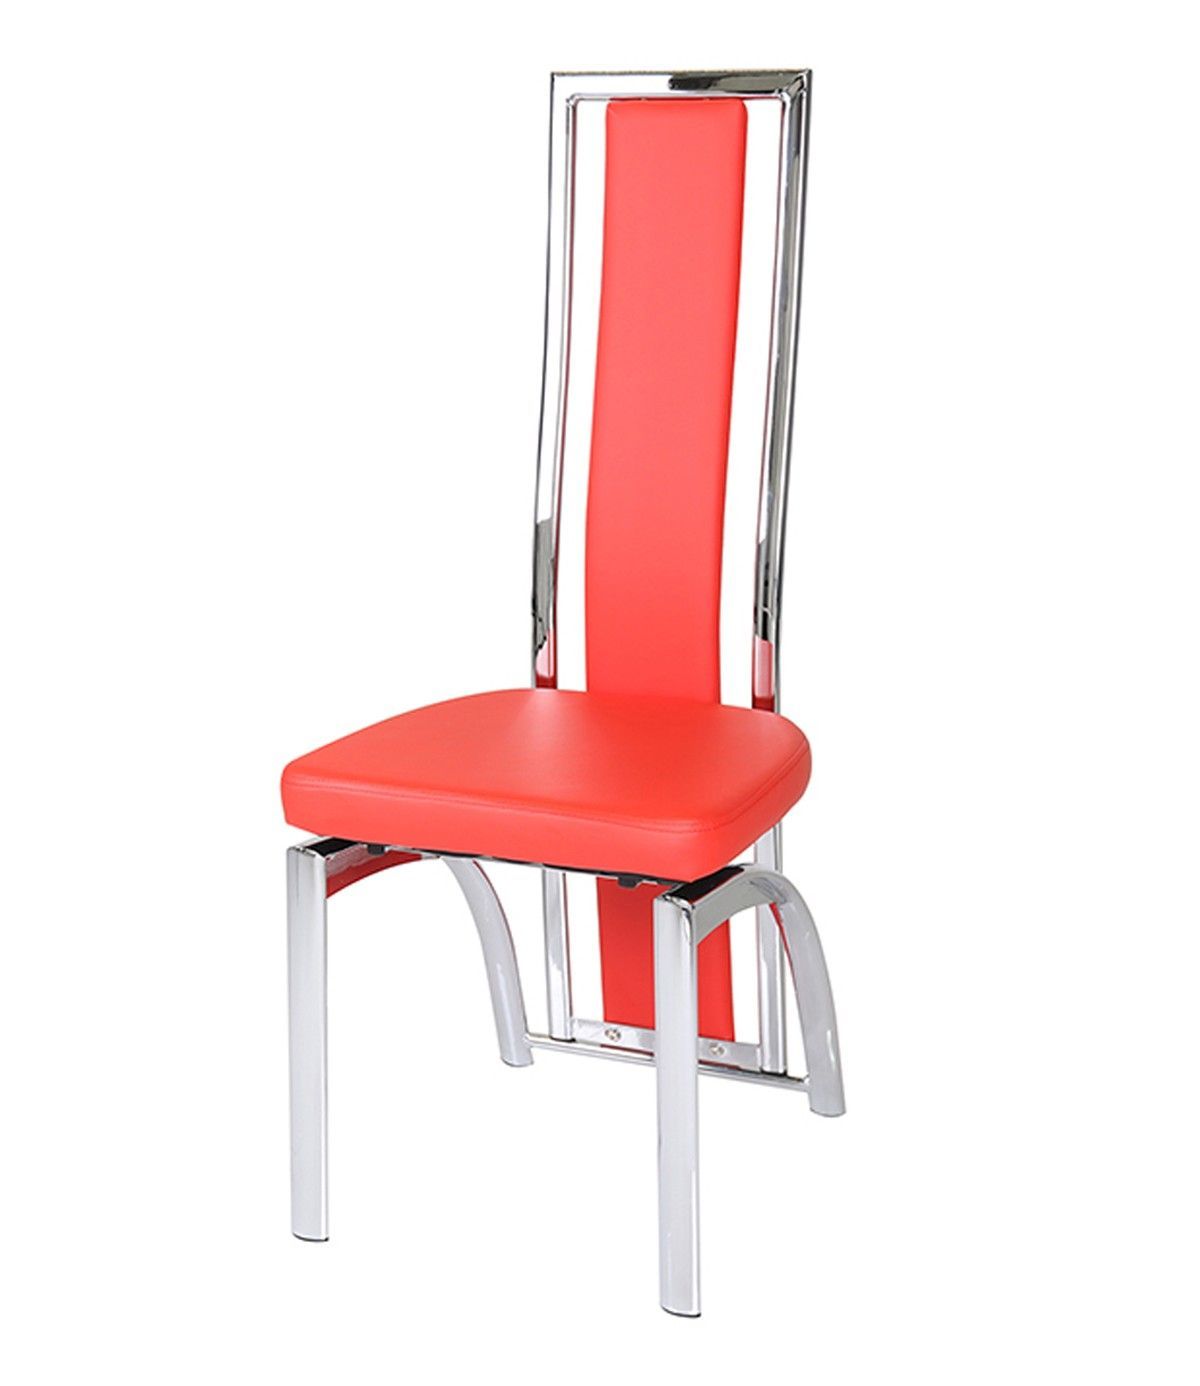 Amazing Mayfair High Back Faux Leather And Chrome Red Dining Chair Camellatalisay Diy Chair Ideas Camellatalisaycom